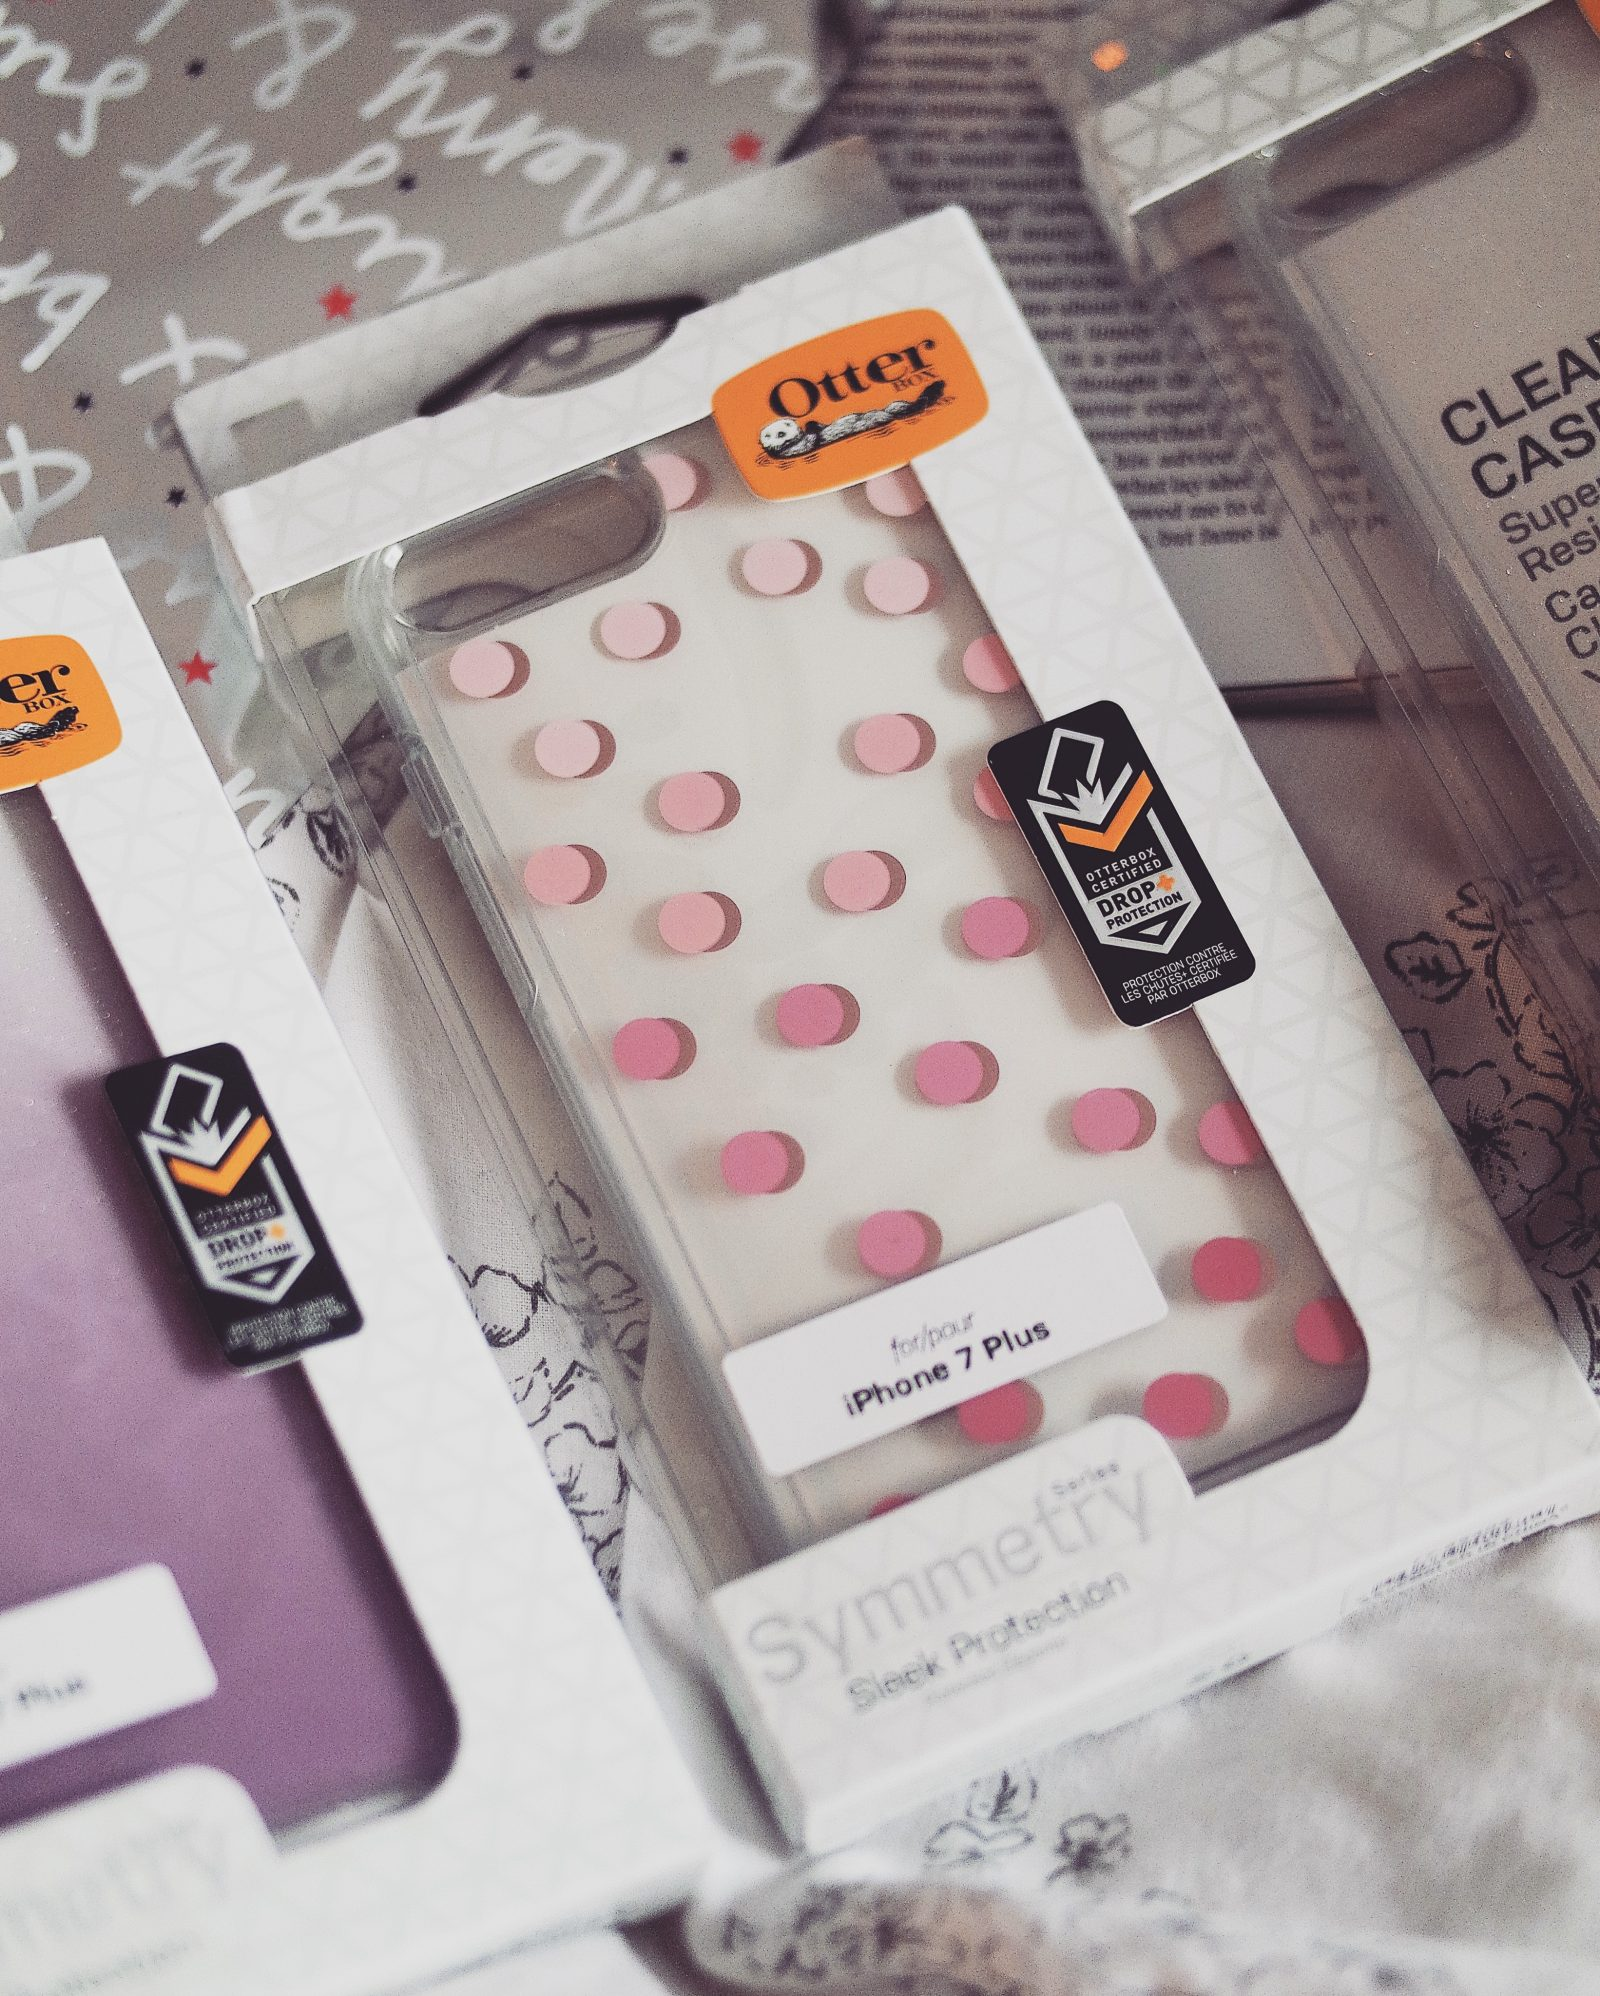 My Otterbox - Polka Dot Phone Case